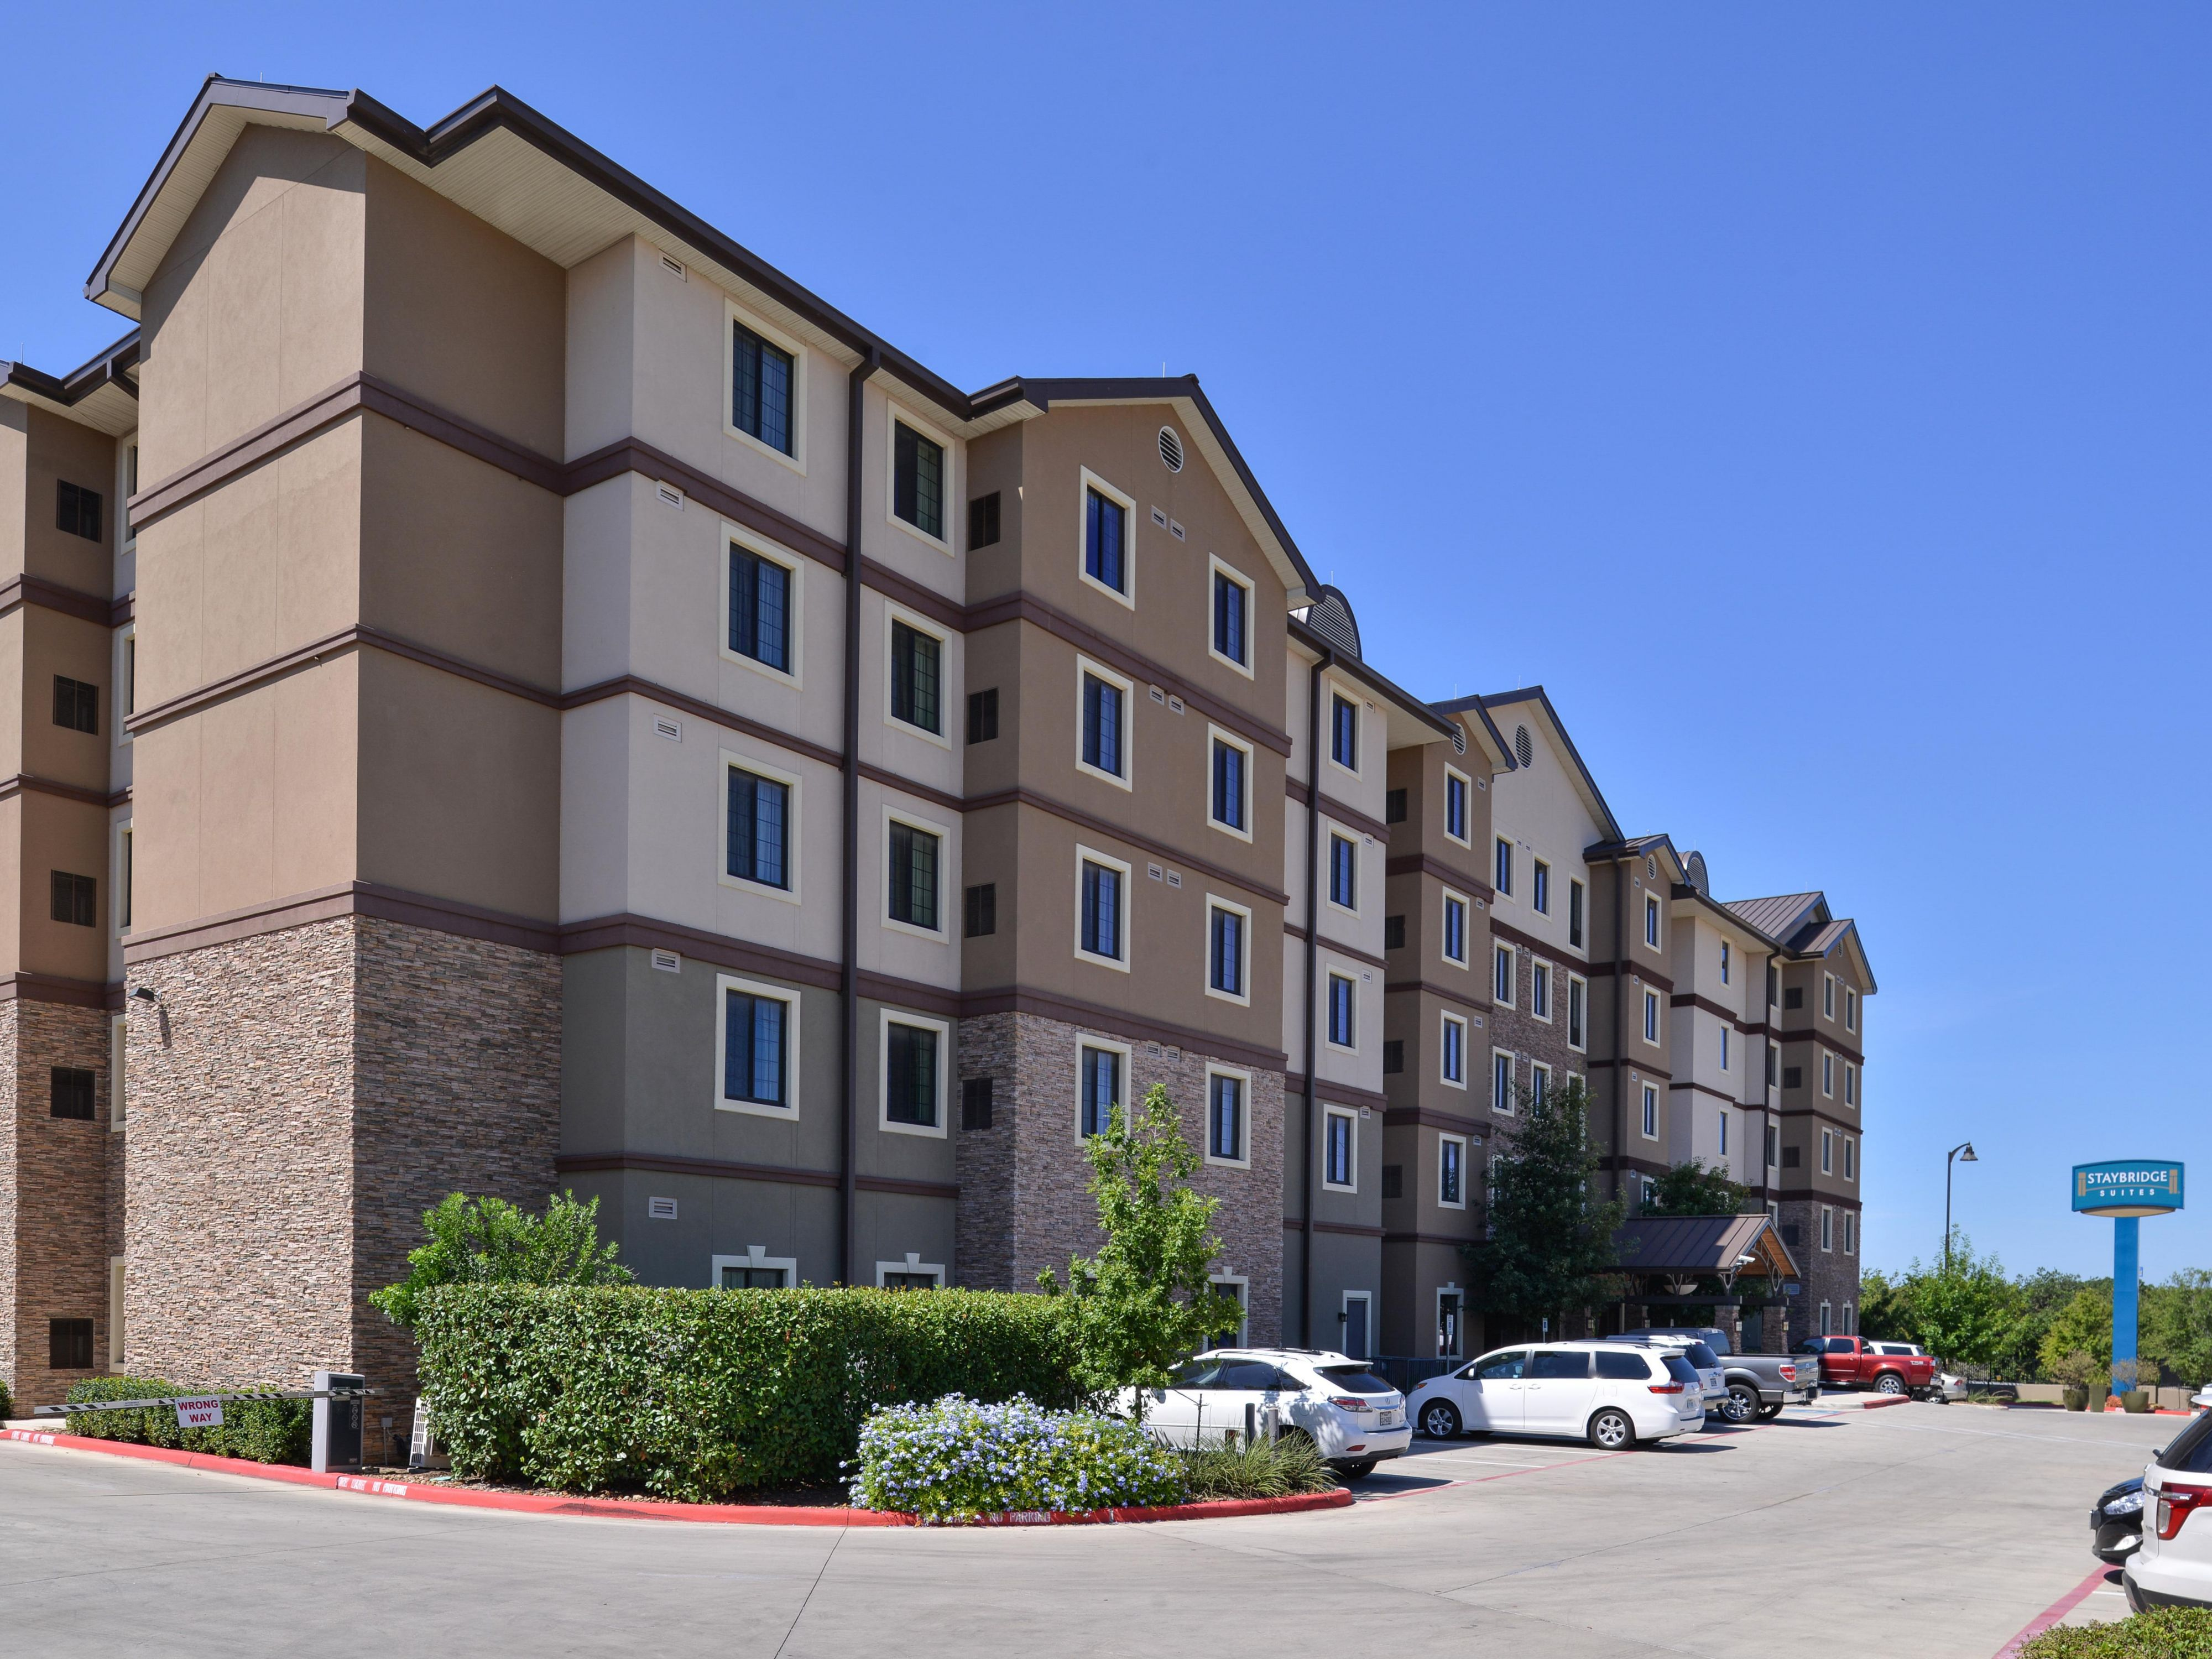 San Antonio Hotels Staybridge Suites Stone Oak Extended Stay Hotel In Texas